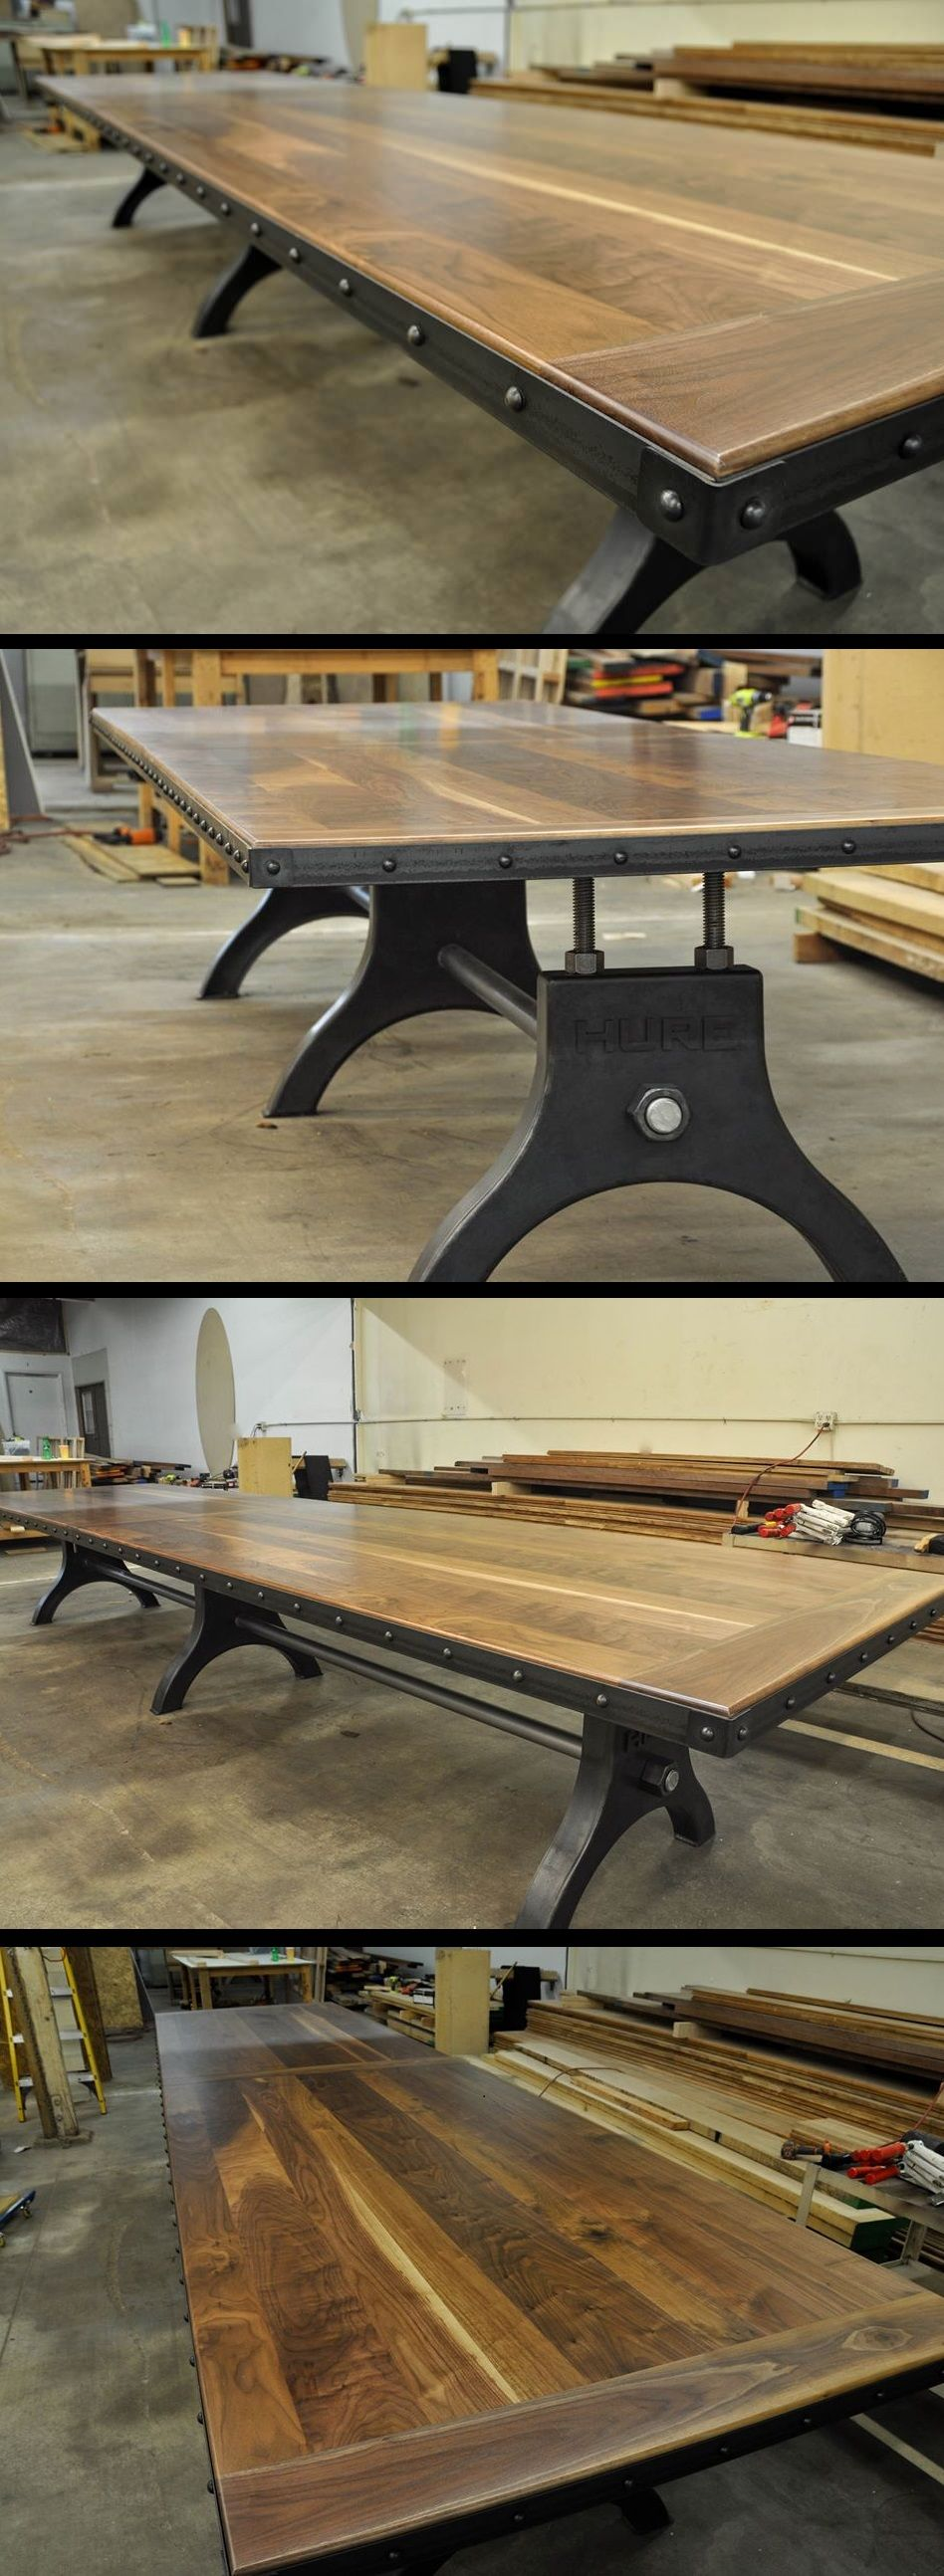 Hure conference table with faux crank vintage industrial furniture - Helicoid Table Vintage Industrial Furnitureindustrial